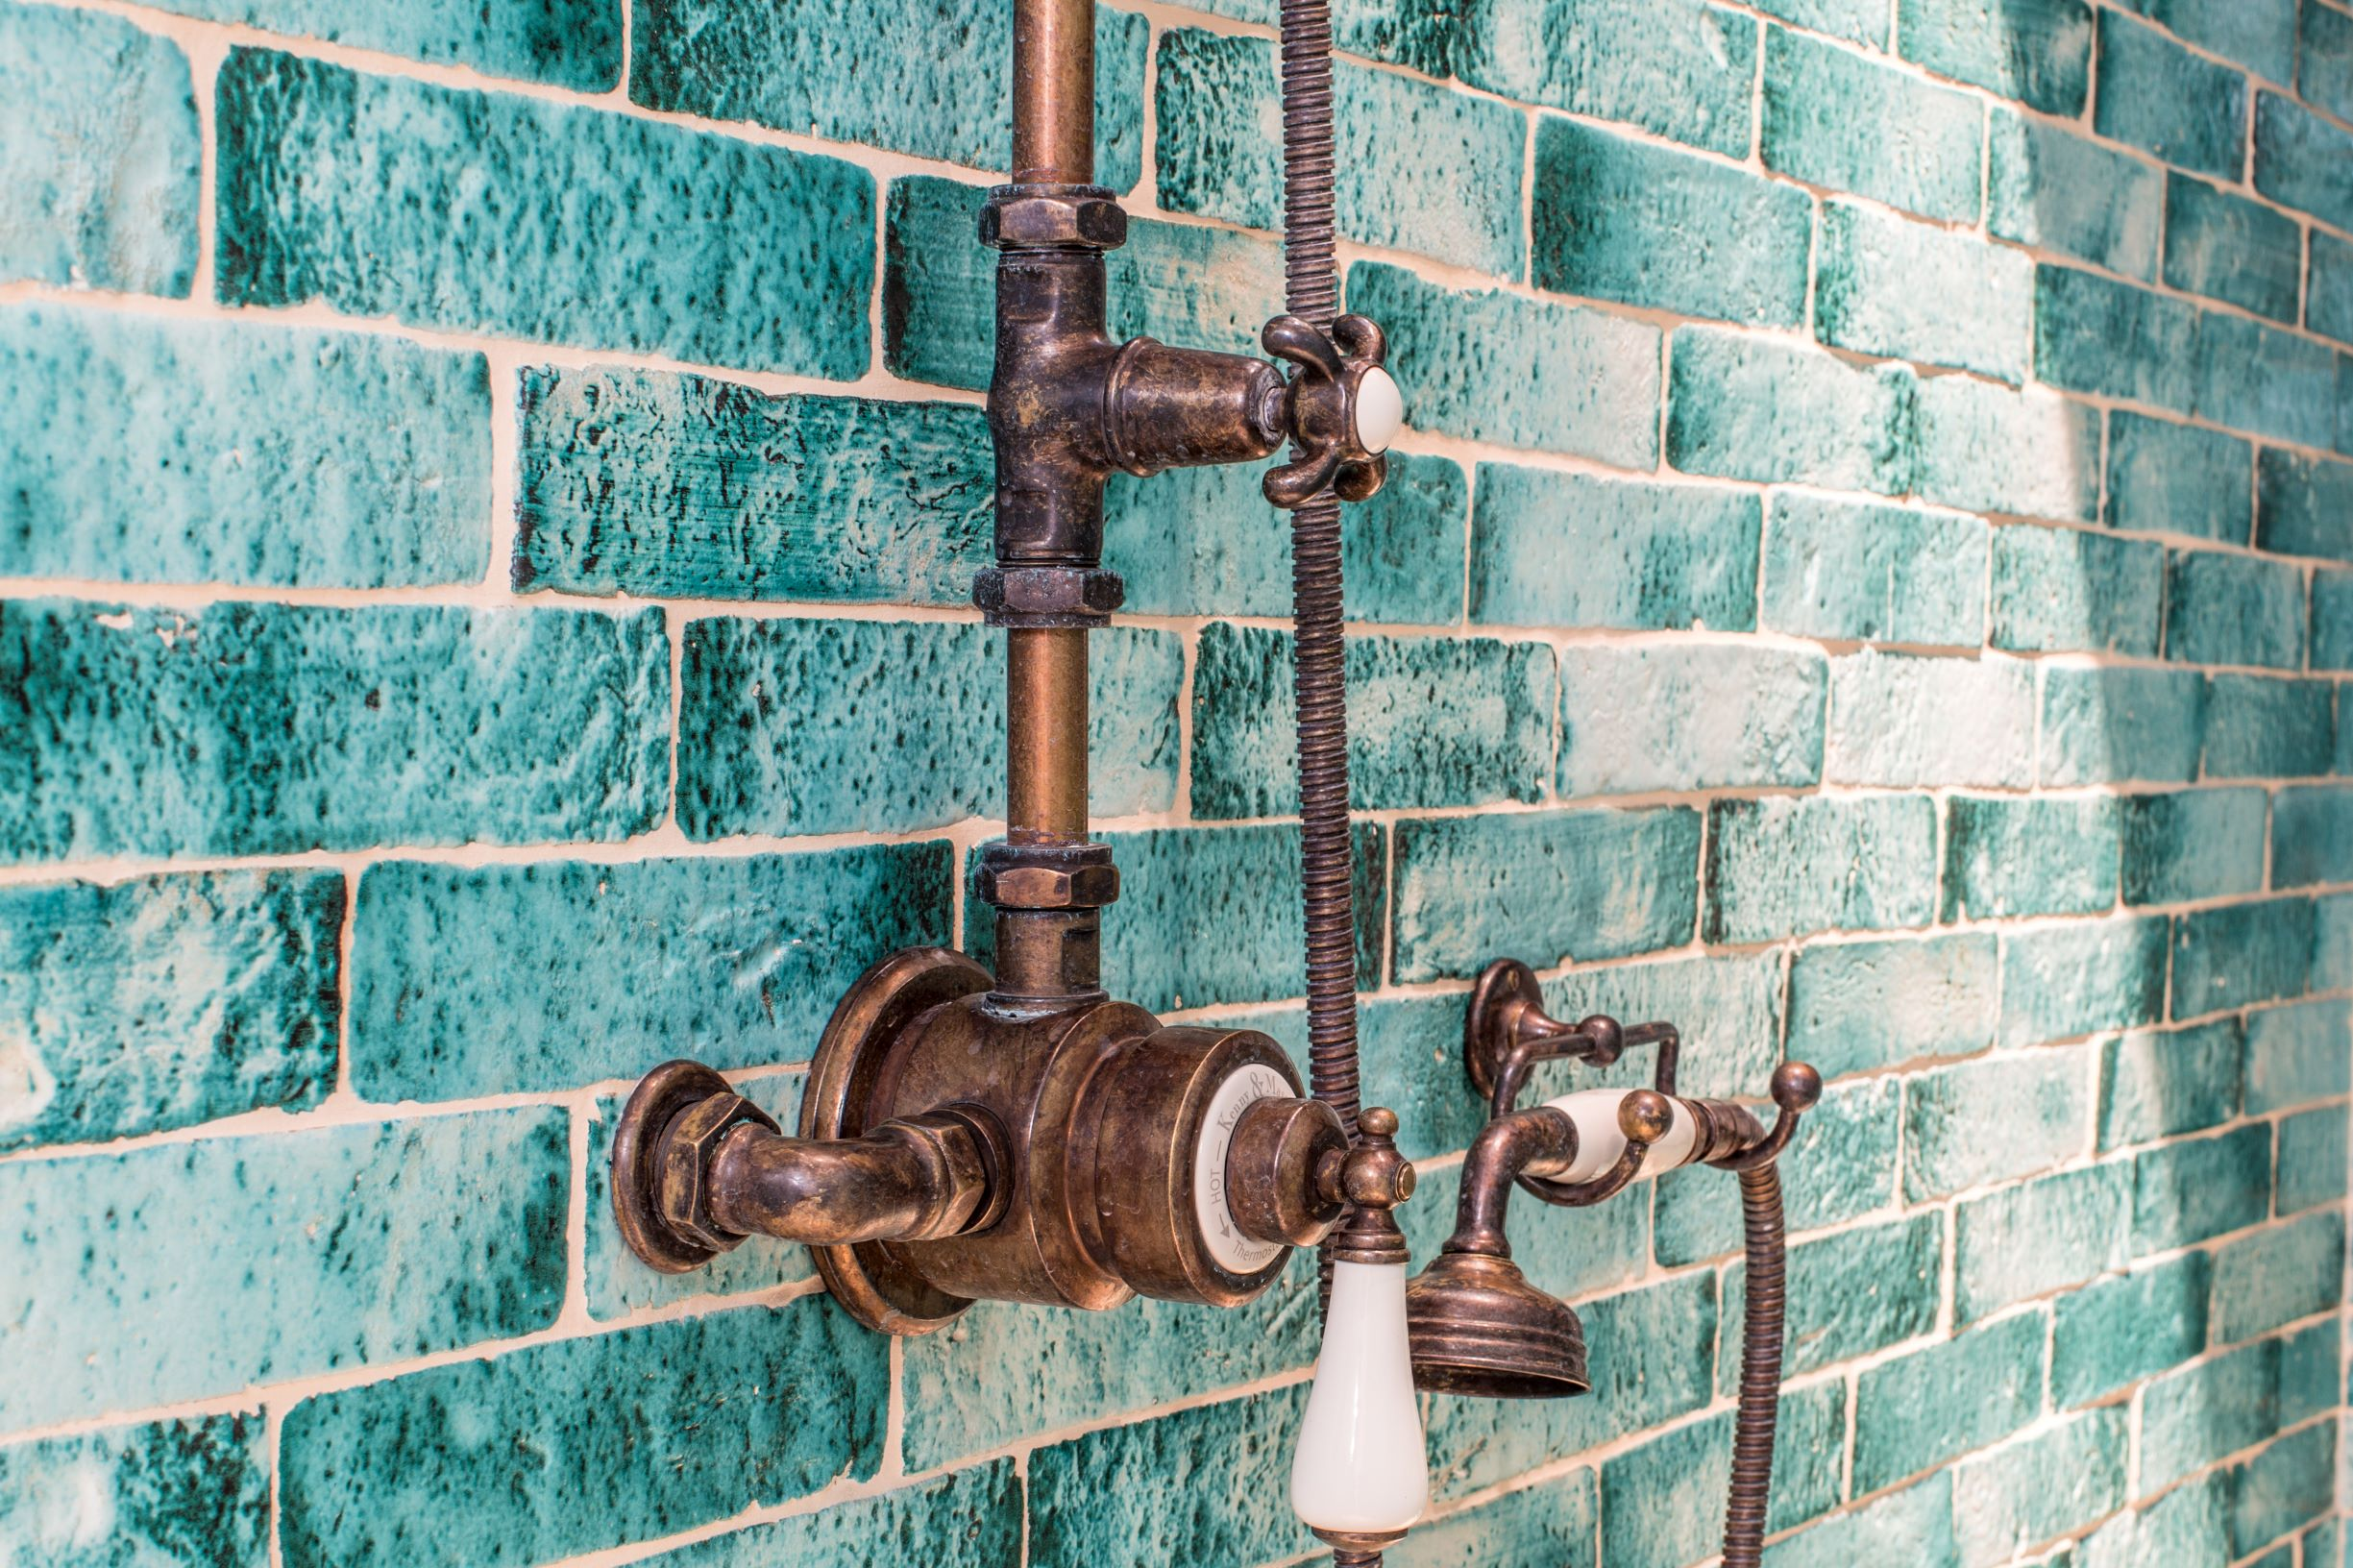 KMbadkamerkranen/Kenny_amp_Mason_DISCOVERY_Thermostatic_shower_-_detail_1.jpg